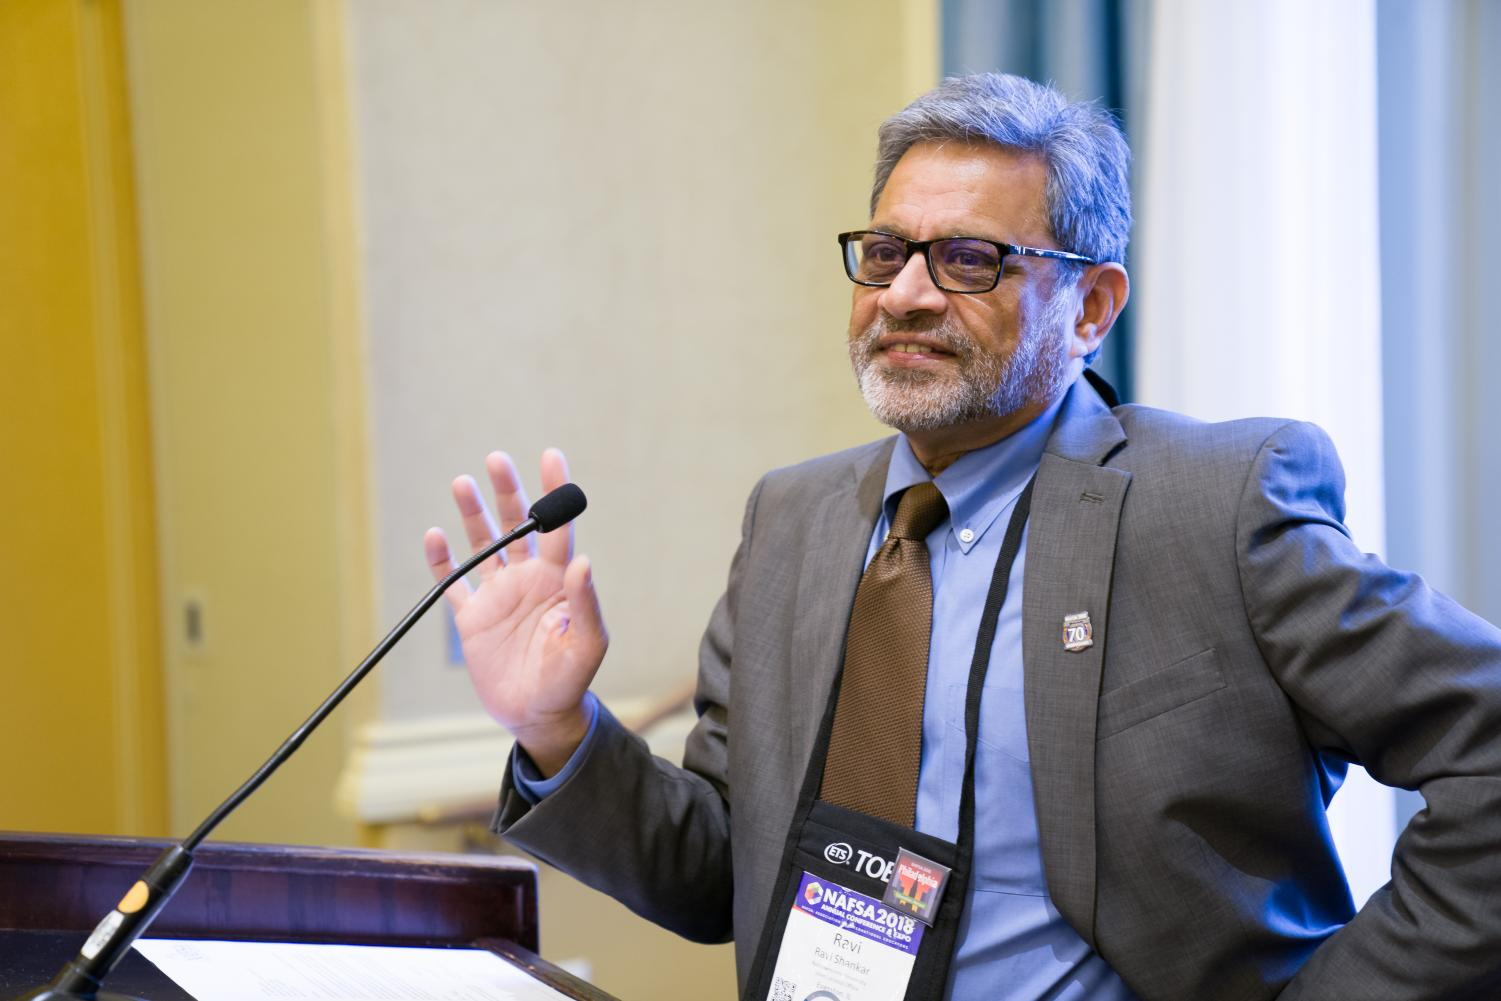 Ravi Shankar, director of Northwestern's International Office. Shankar will assume the role as president and chairman of the board of directors at NAFSA.